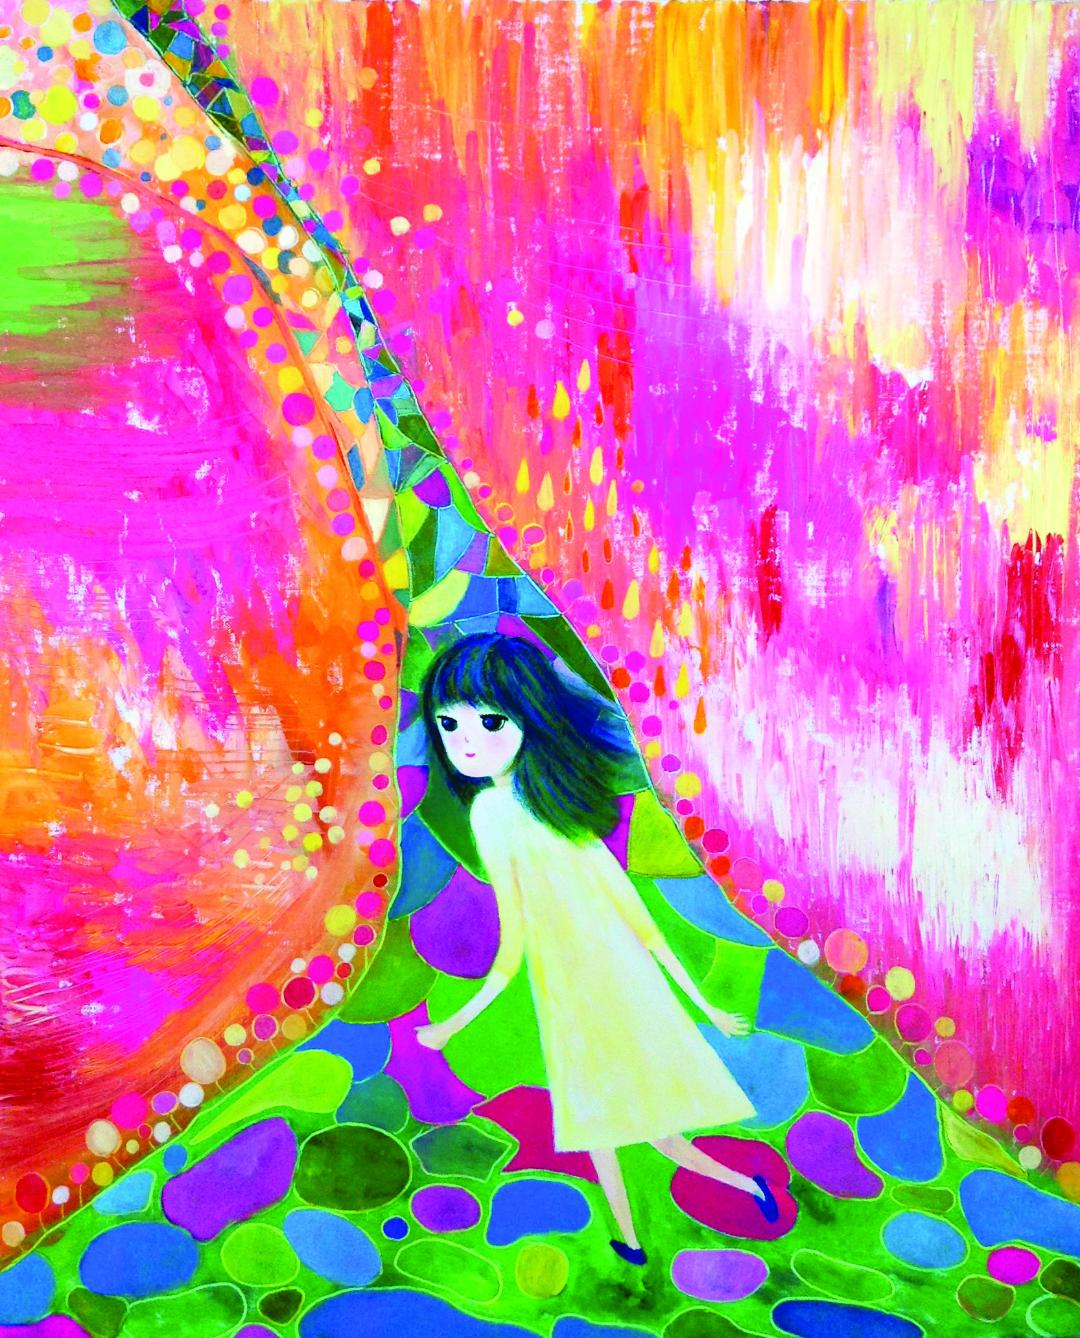 Abstract painting with a child-like figure in the center walking. Green, purple blue alley in the center and bright pink background.